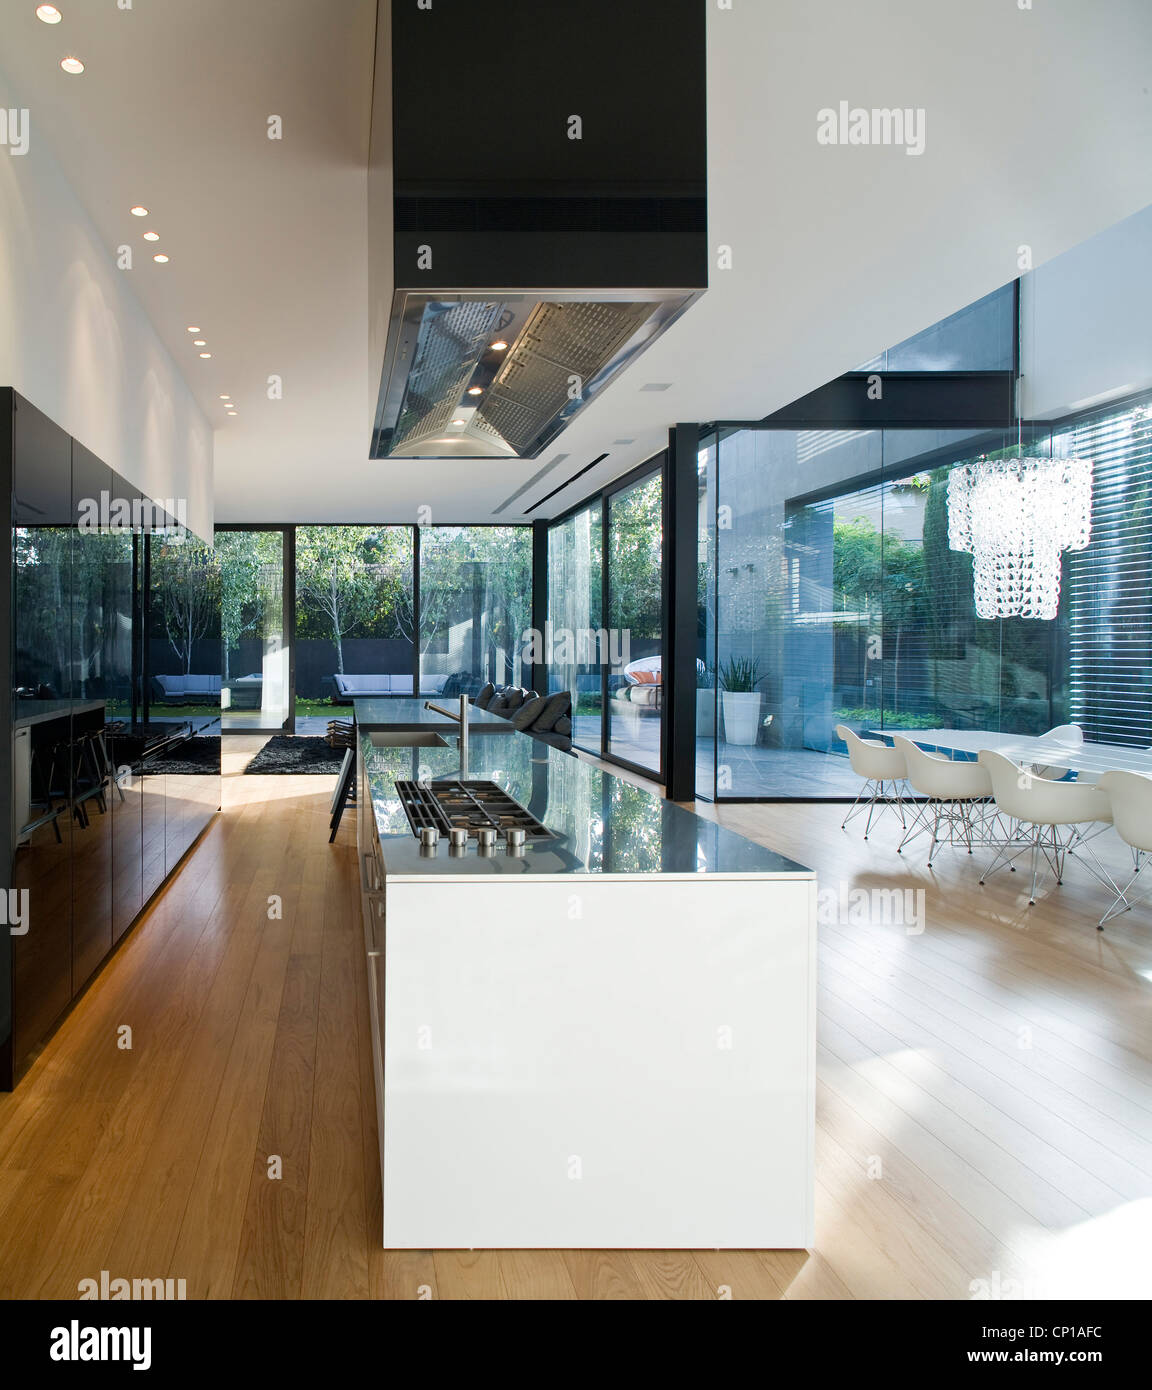 Interior of modern glass house. Open plan kitchen with island unit ...